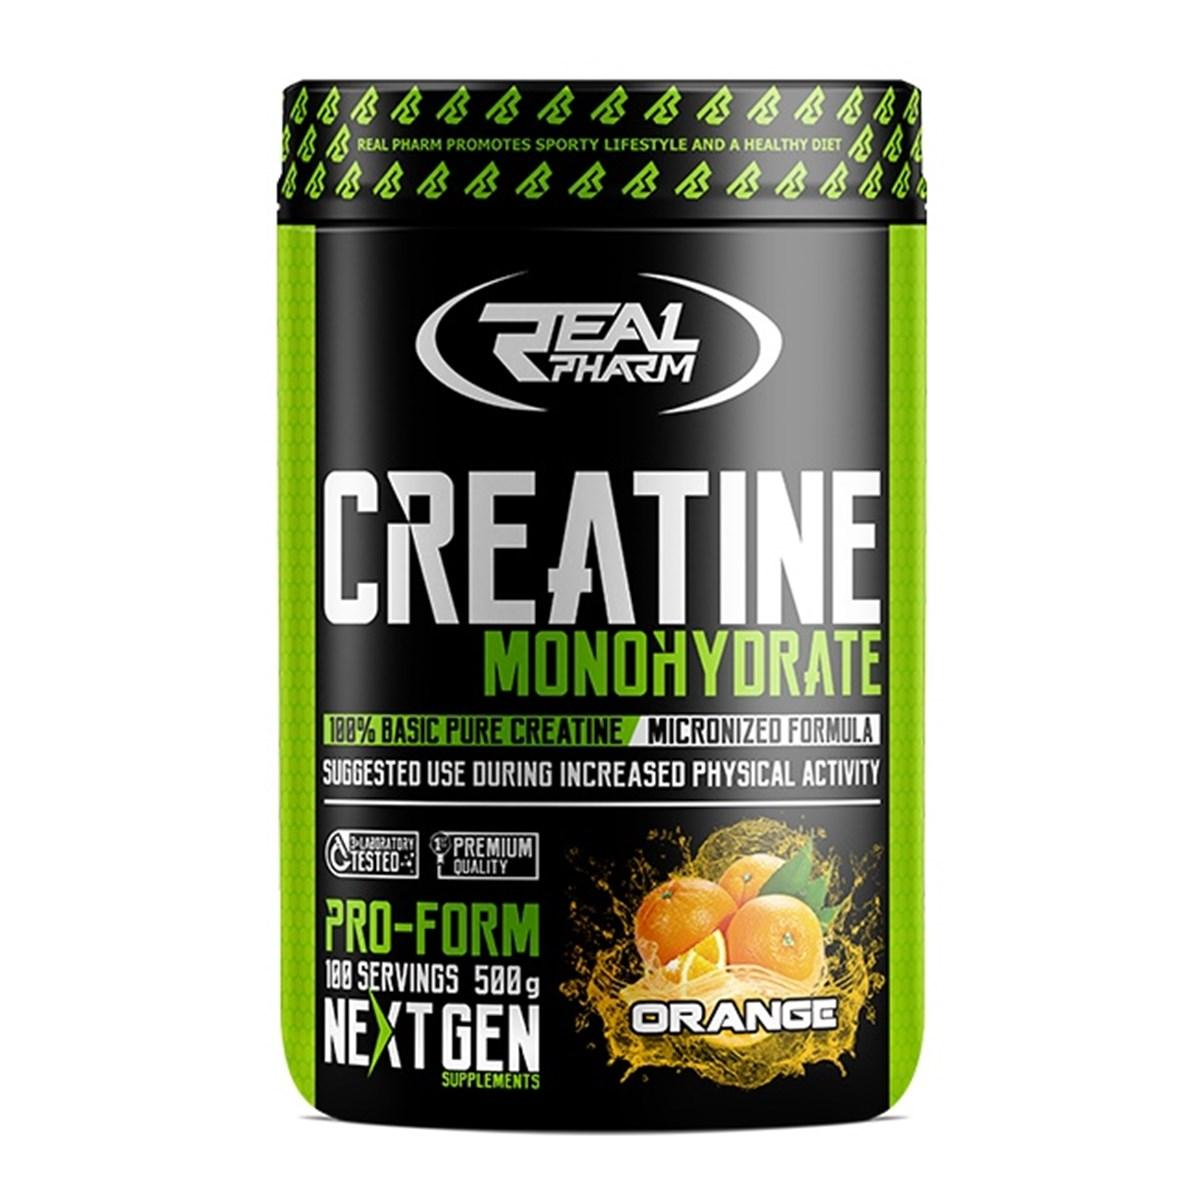 Креатин Real Pharm Creatine Monohydrate 500 g apple-rhubarb